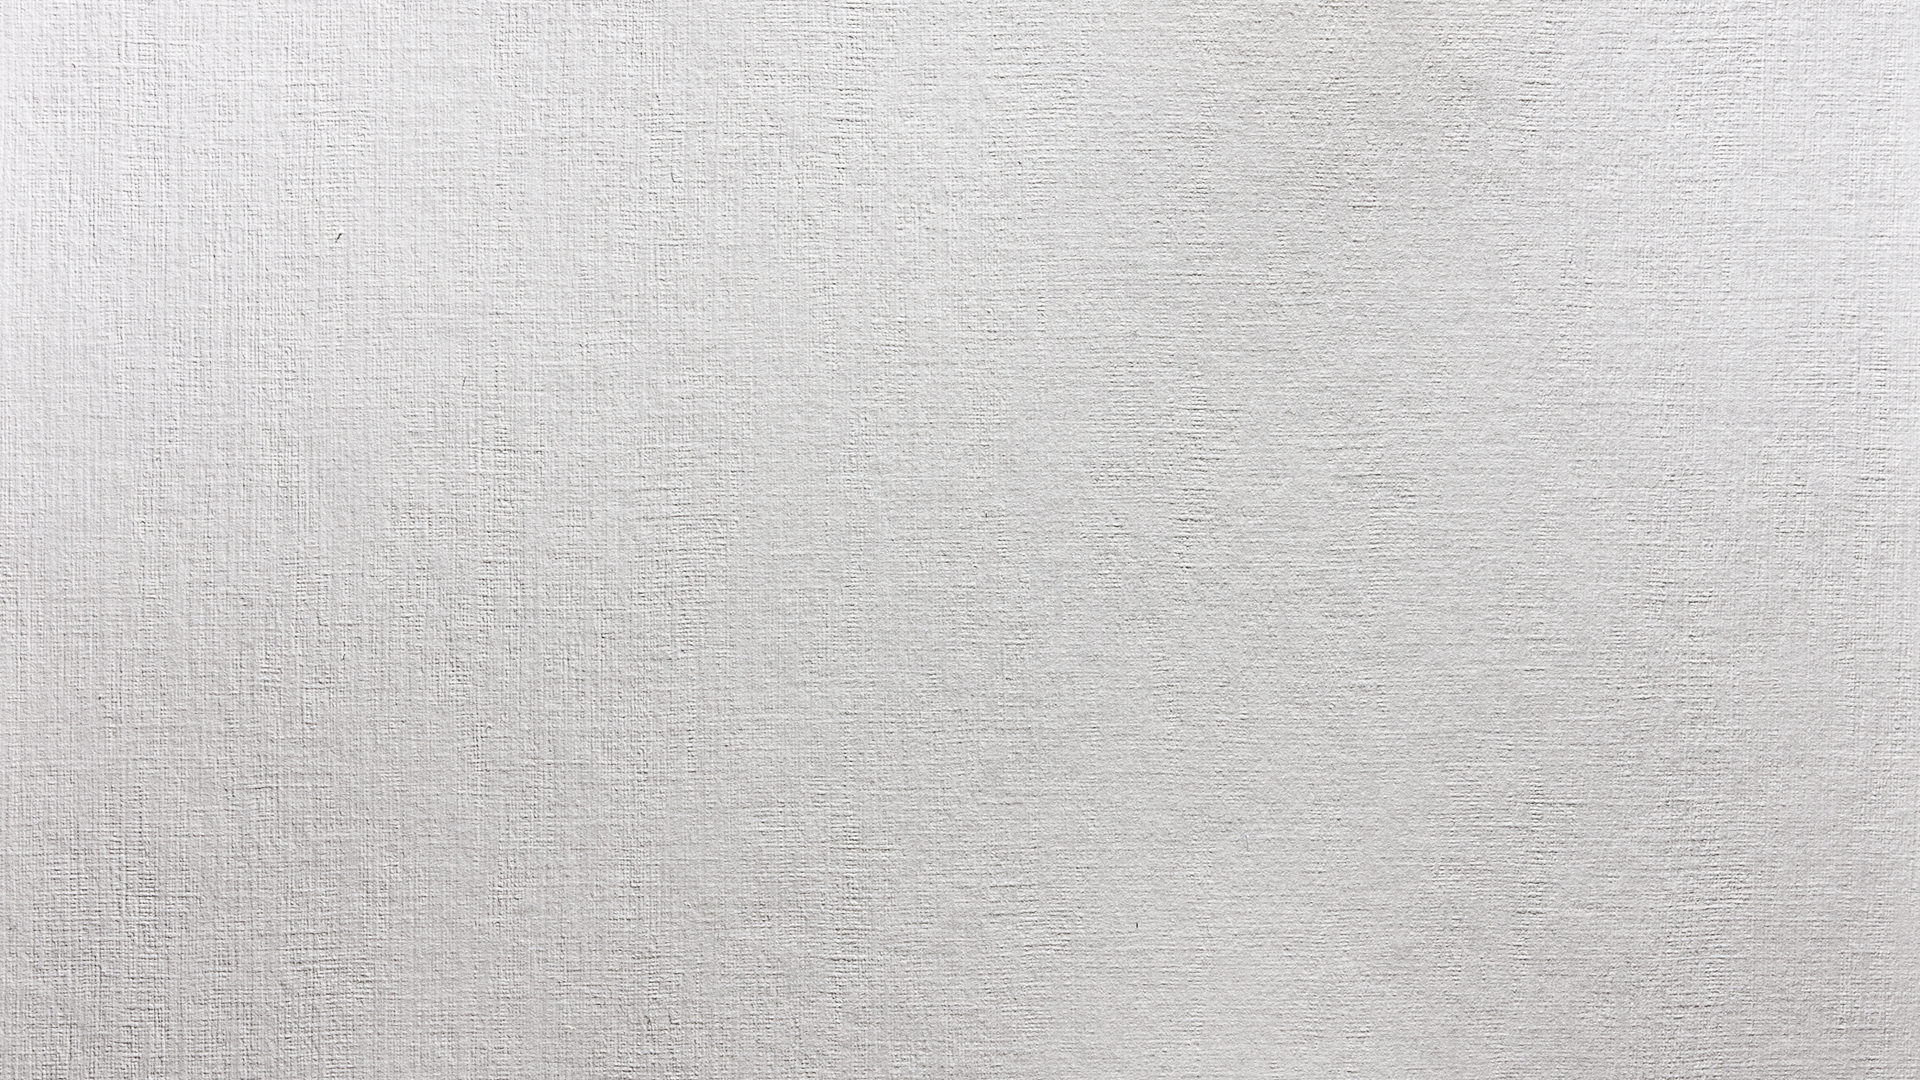 Paper Background - PowerPoint Backgrounds for Free PowerPoint ...